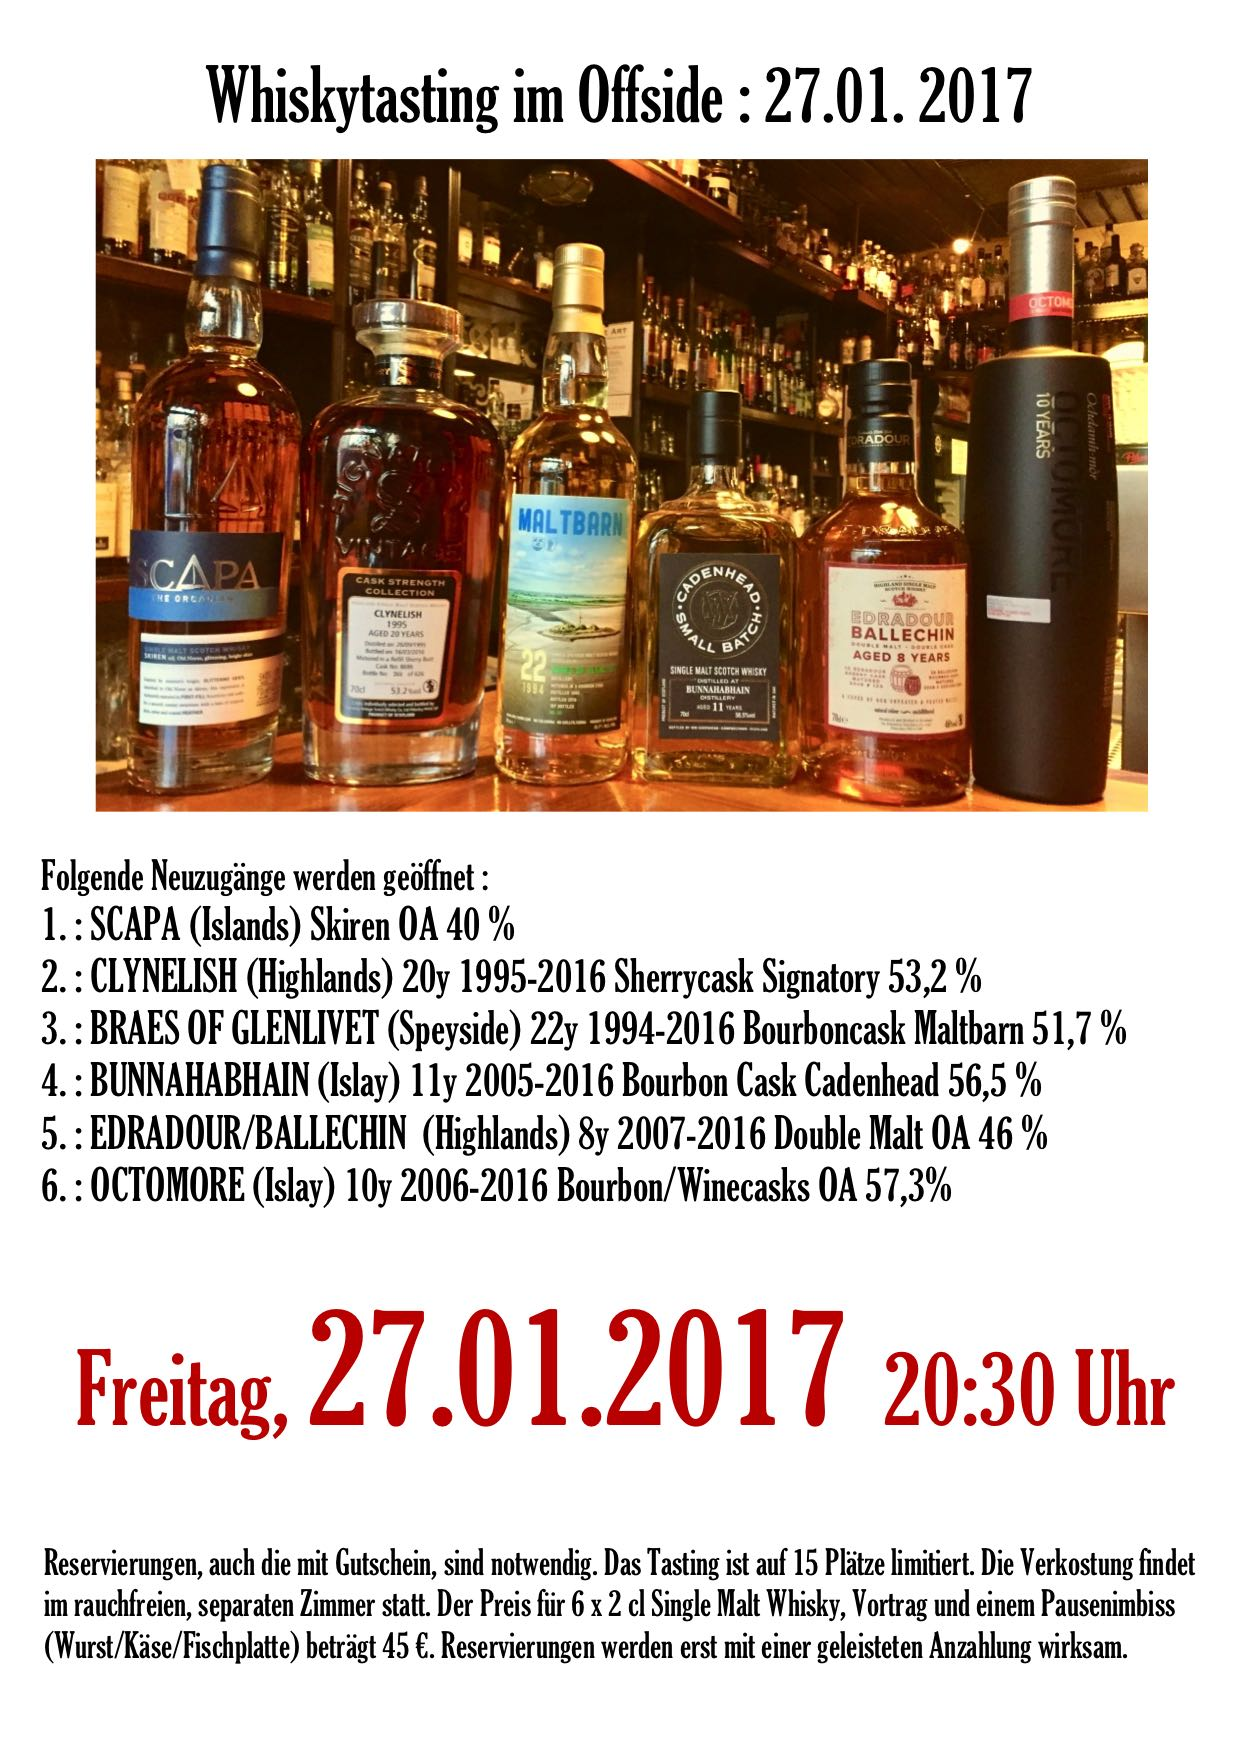 Offside Whisky Tasting 27.01.2017